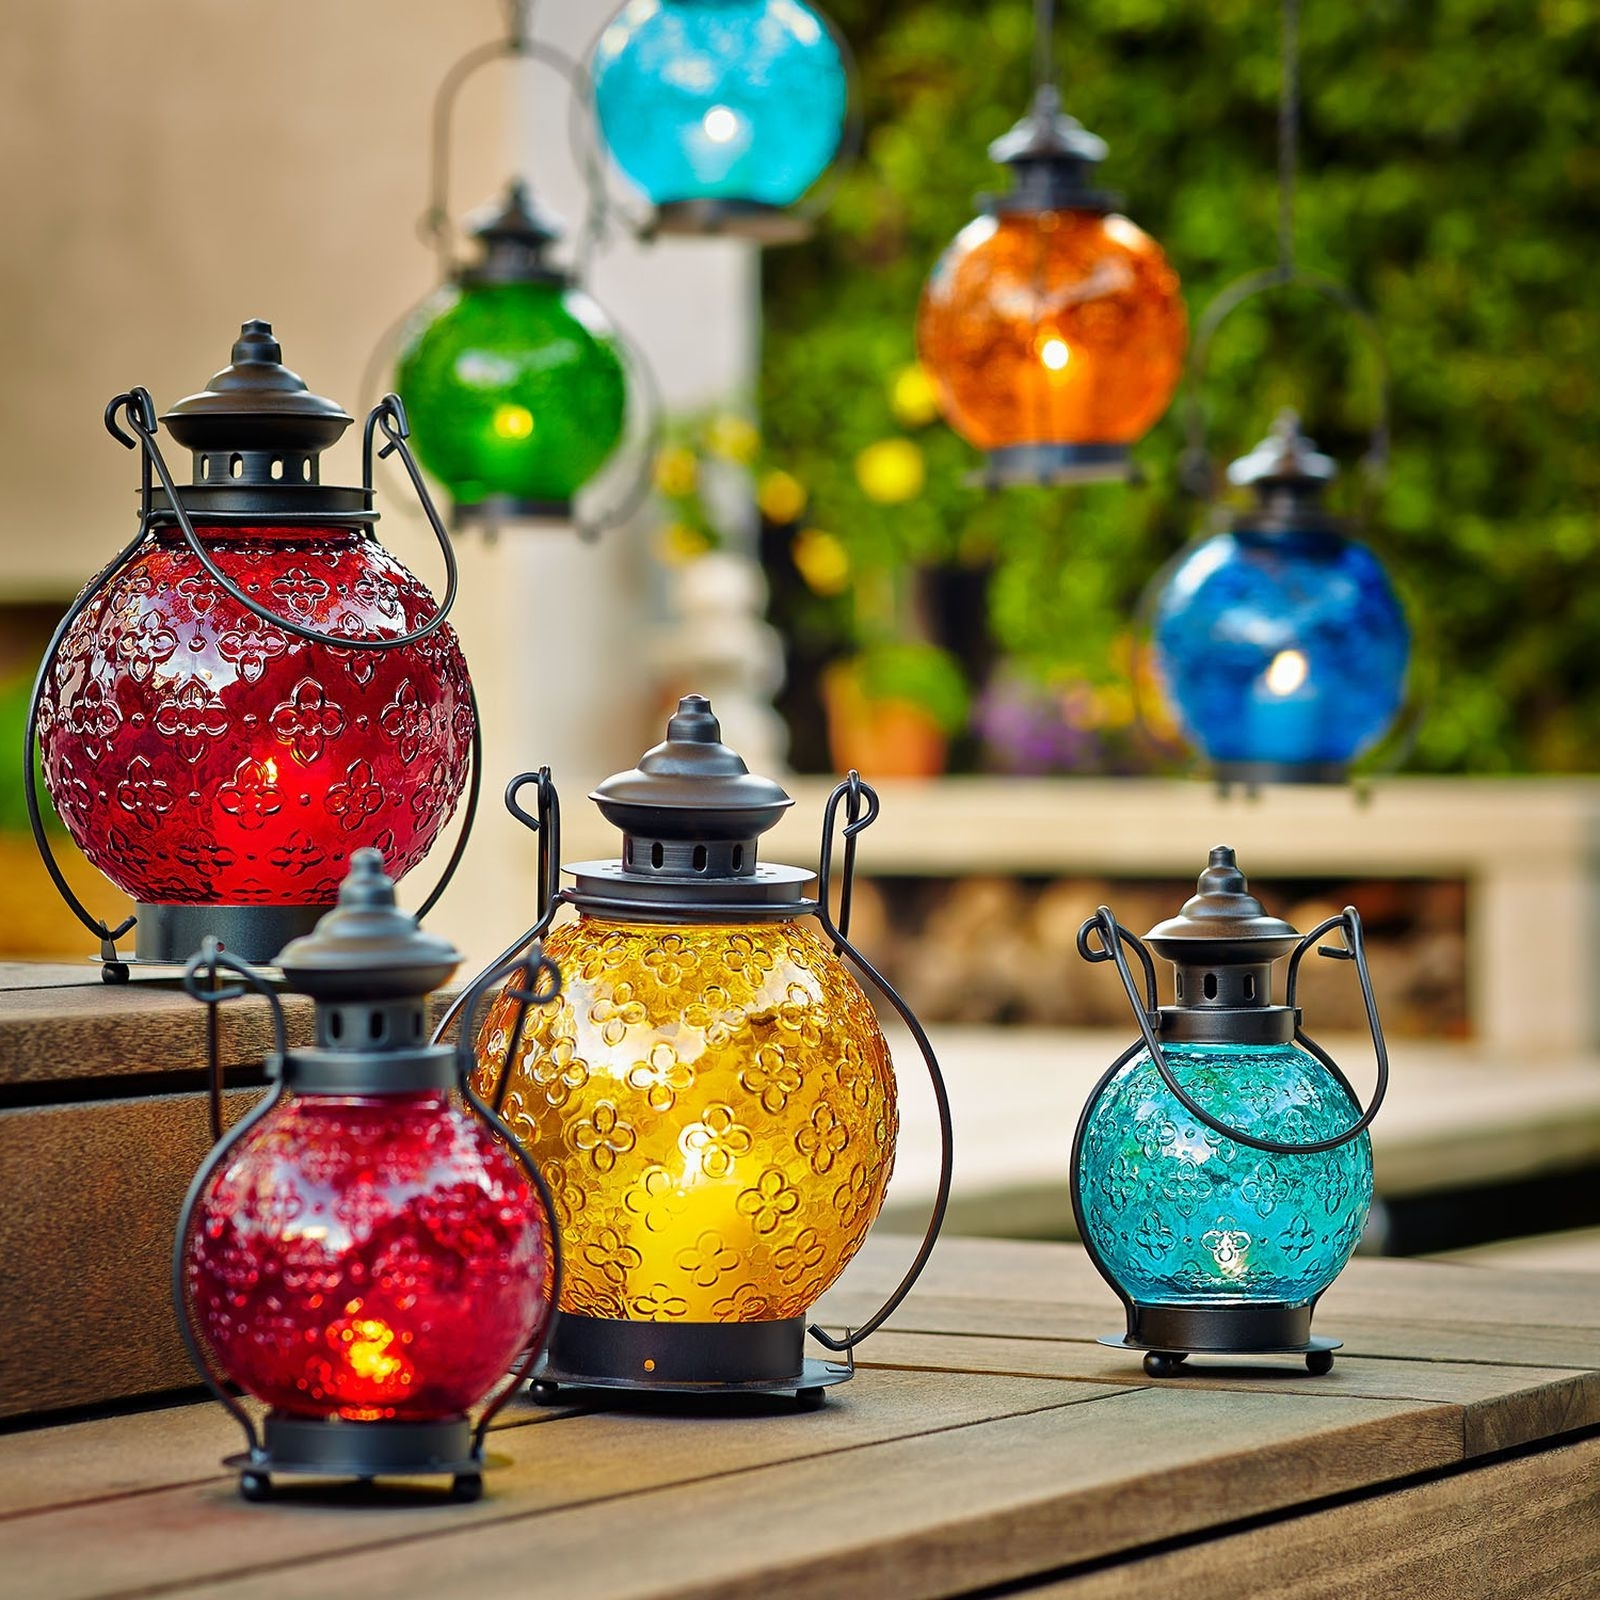 Most Recently Released You Can Still Be The Life Of Your Parties, But Let These Indoor Pertaining To Outdoor Lanterns For Parties (View 16 of 20)